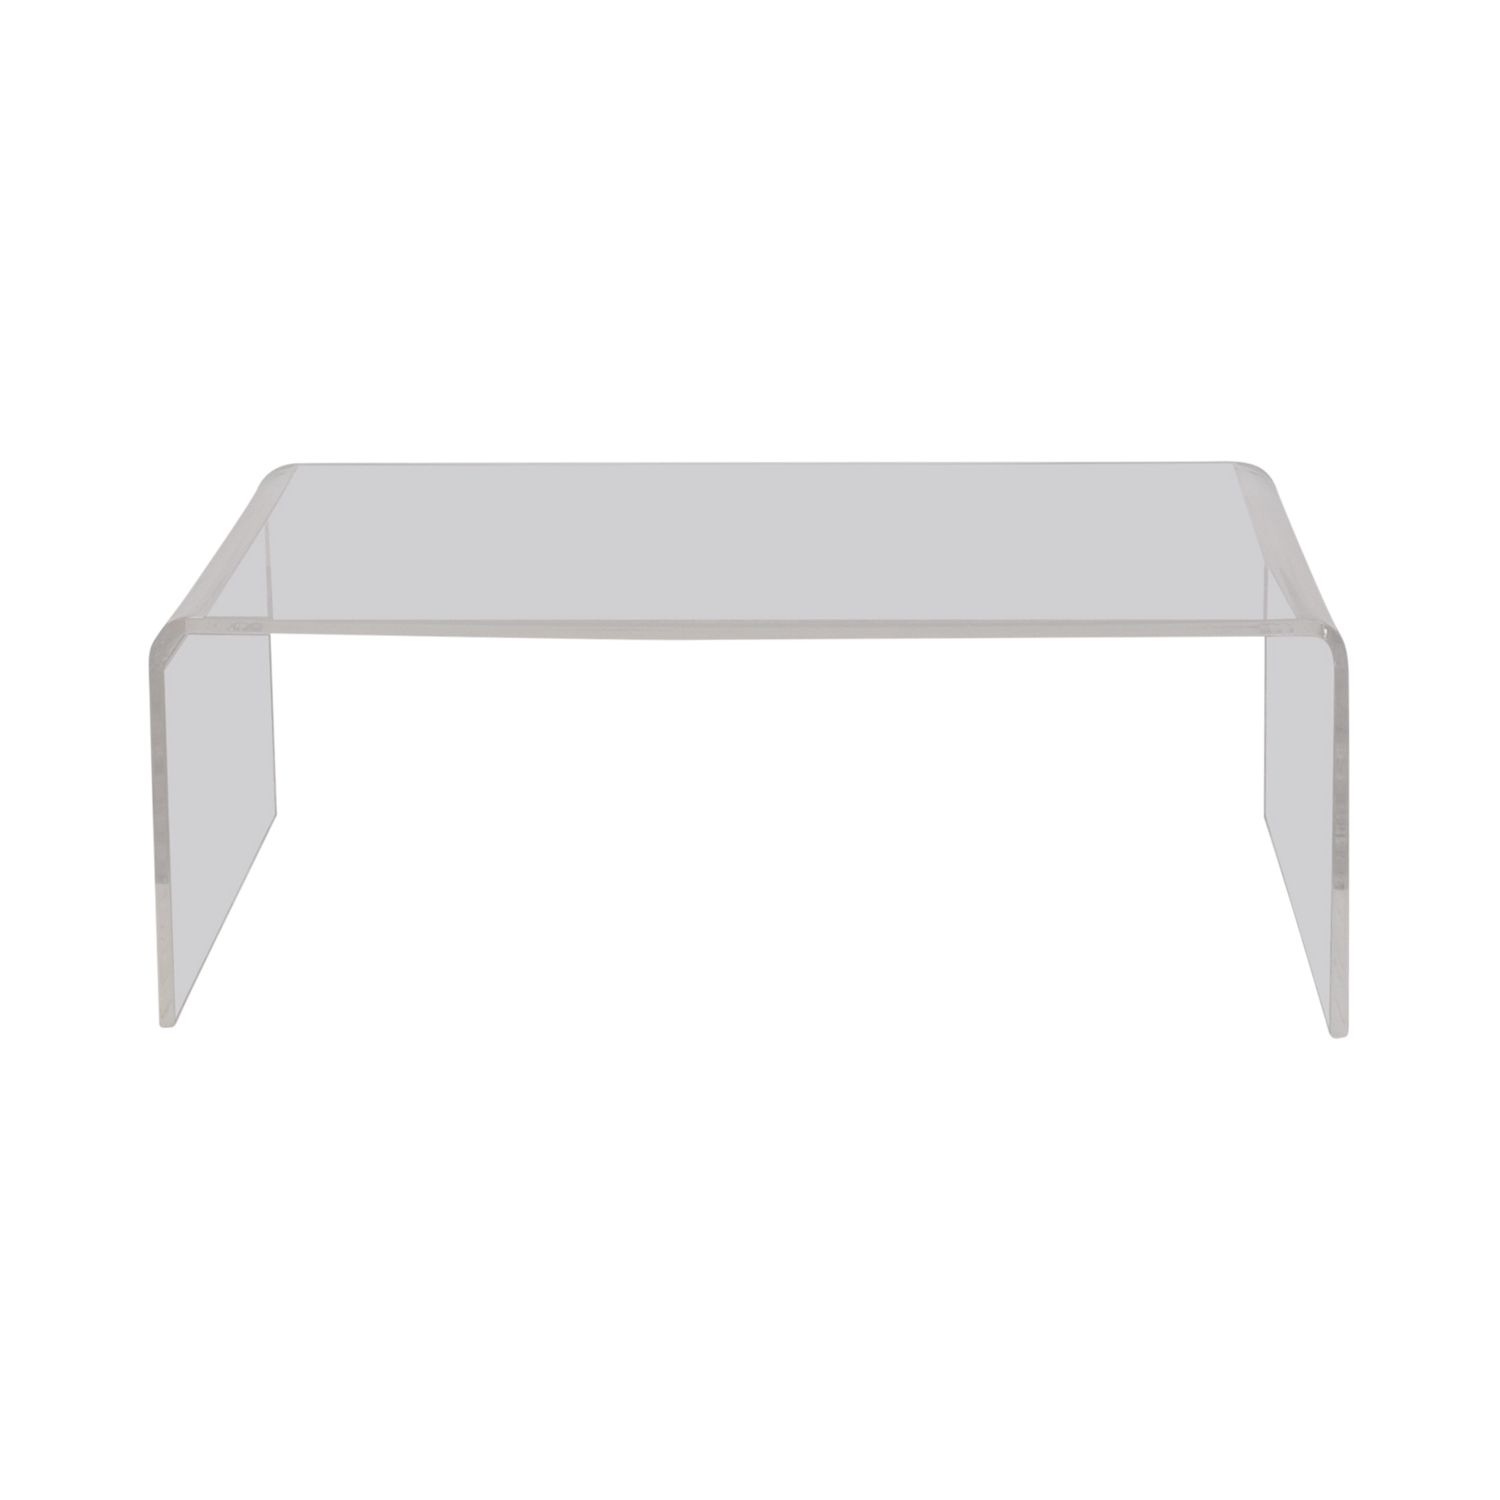 Featured Photo of Peekaboo Acrylic Coffee Tables